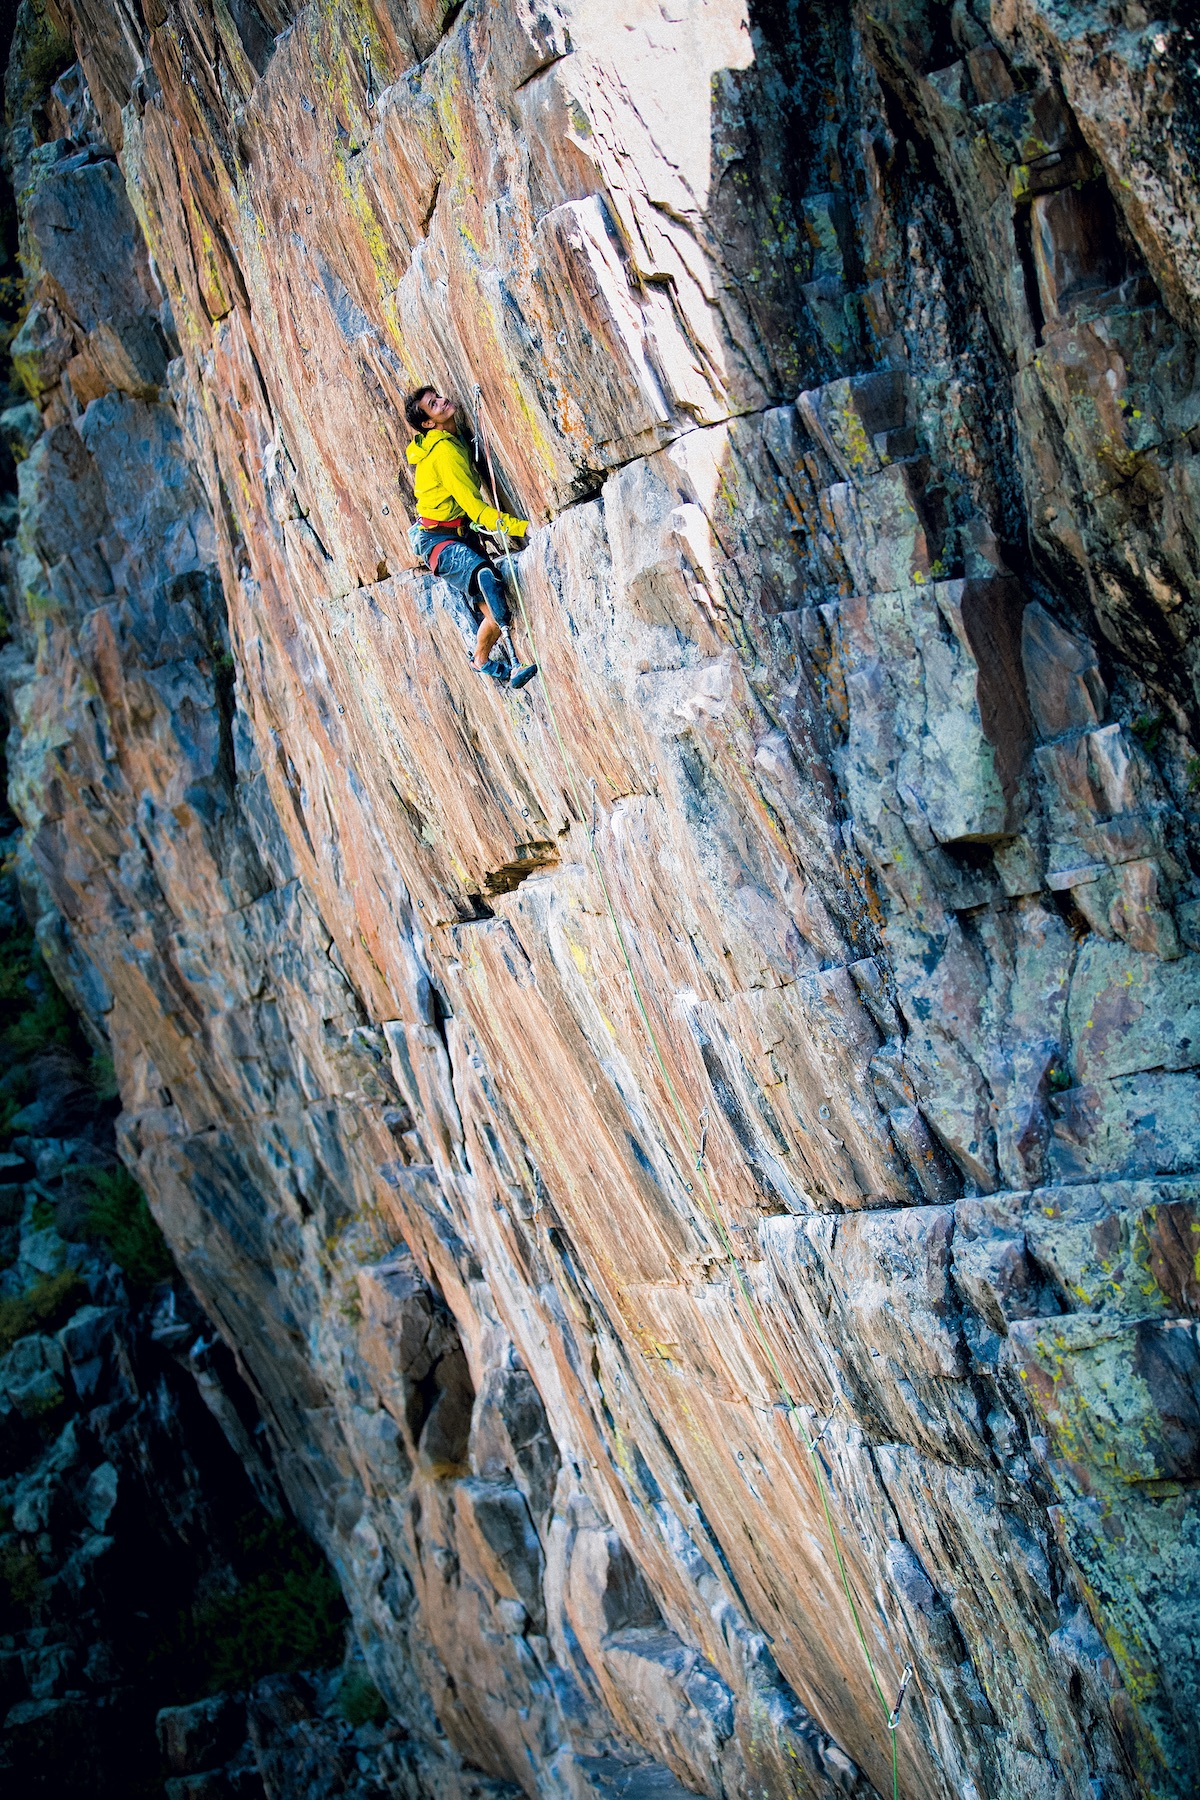 DeMartino leads Tailspin (5.12b), Poudre Canyon, Colorado. [Photo] Cameron Maier/Bearcam Media